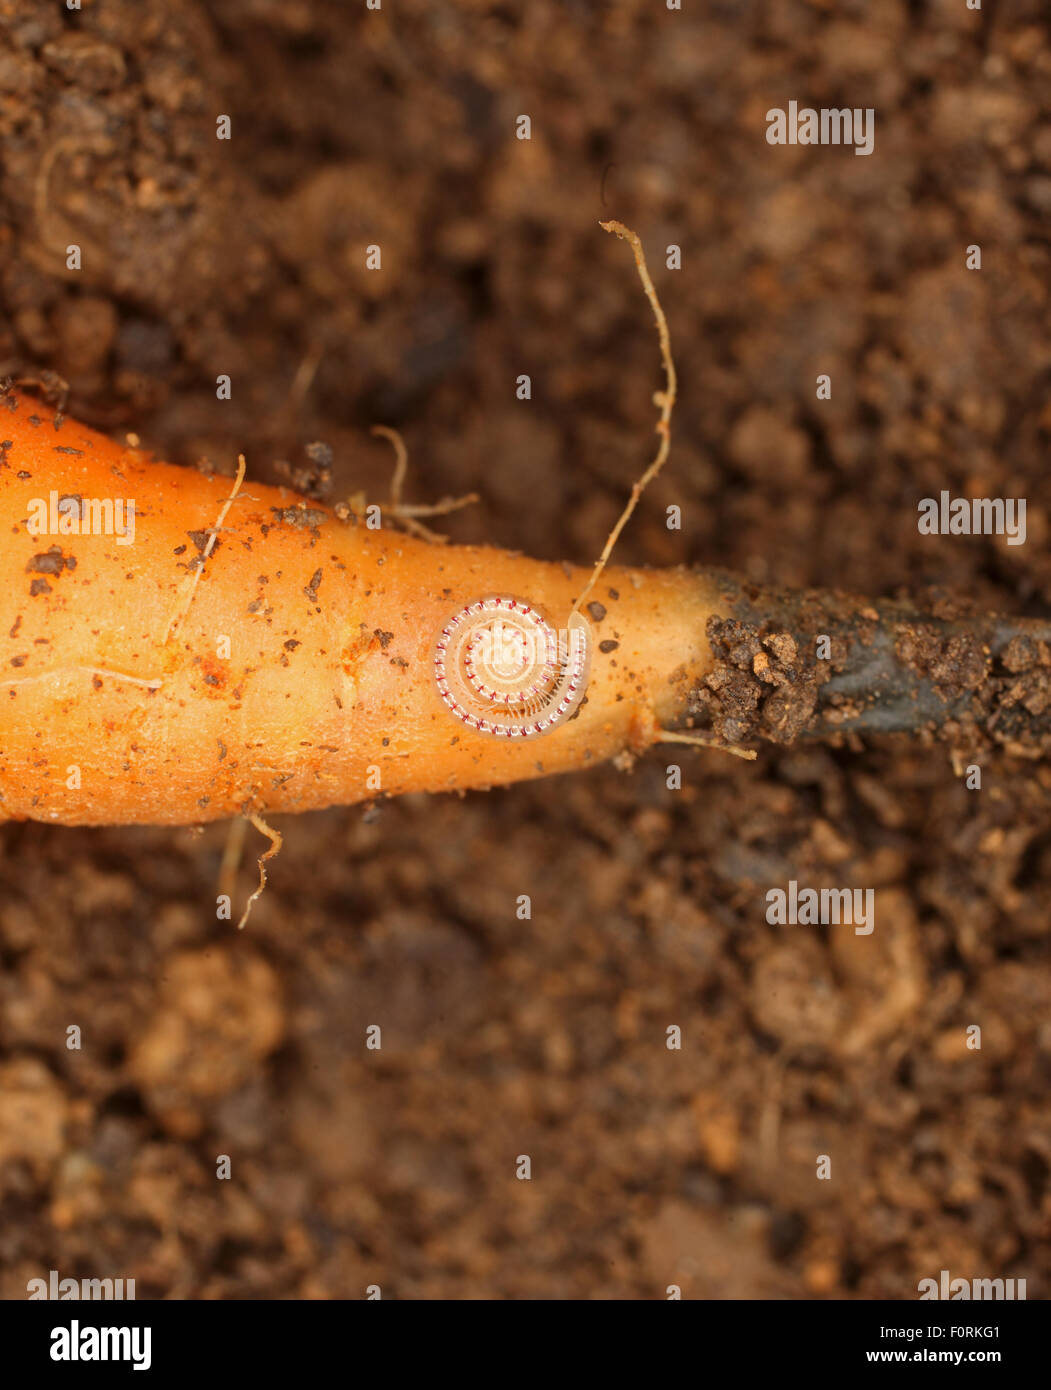 Blaniulus guttalatus Spotted millipede curled into coil when disturbed - Stock Image